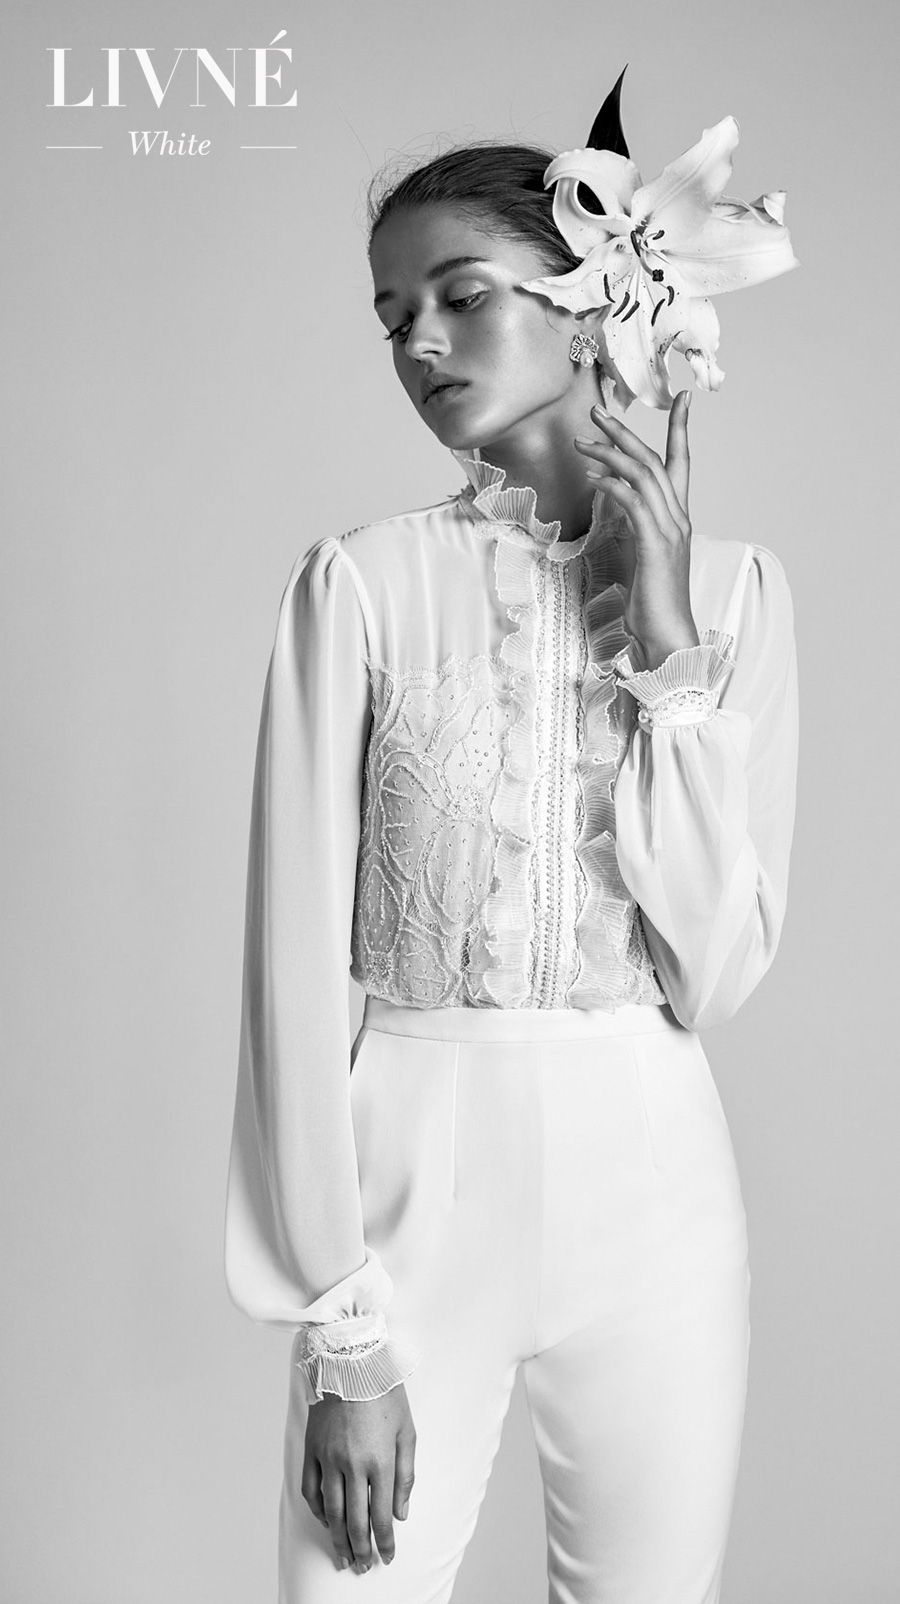 Livné white wedding dresses are perfect for the modern bride